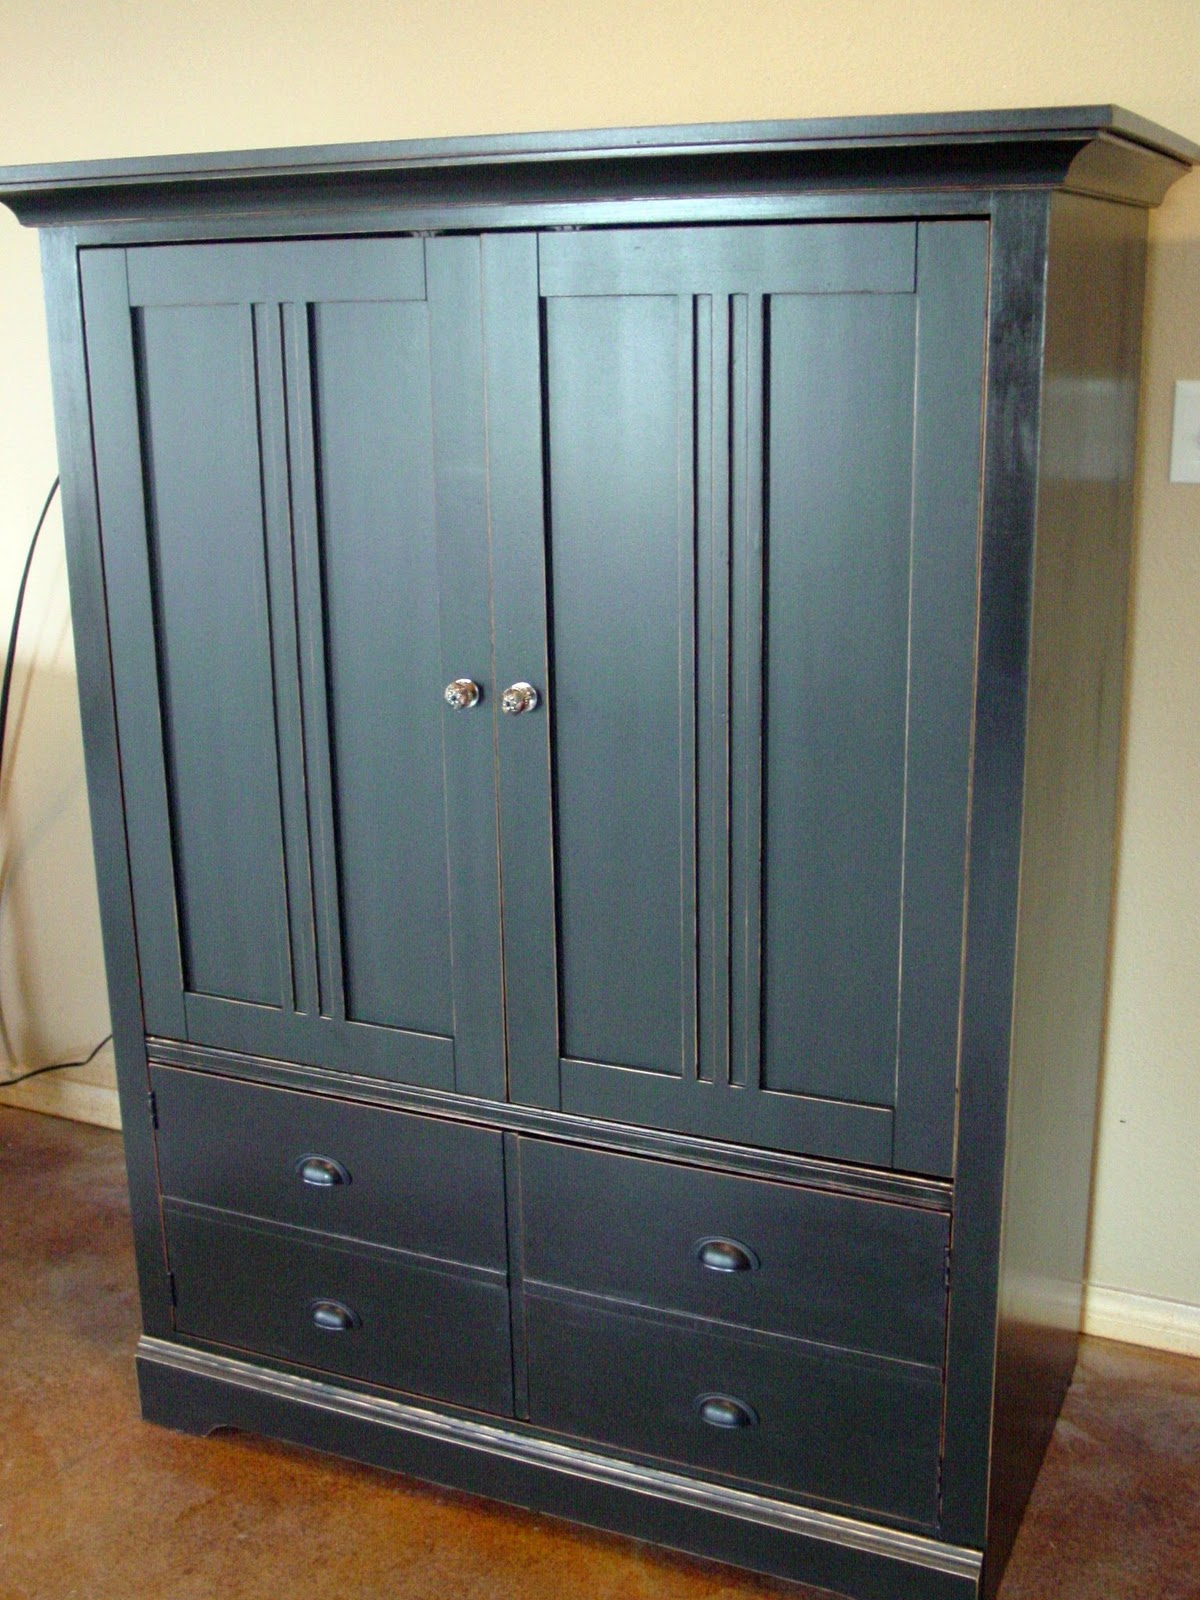 Secondhand charm bassett entertainment armoire cabinet for Entertainment armoire